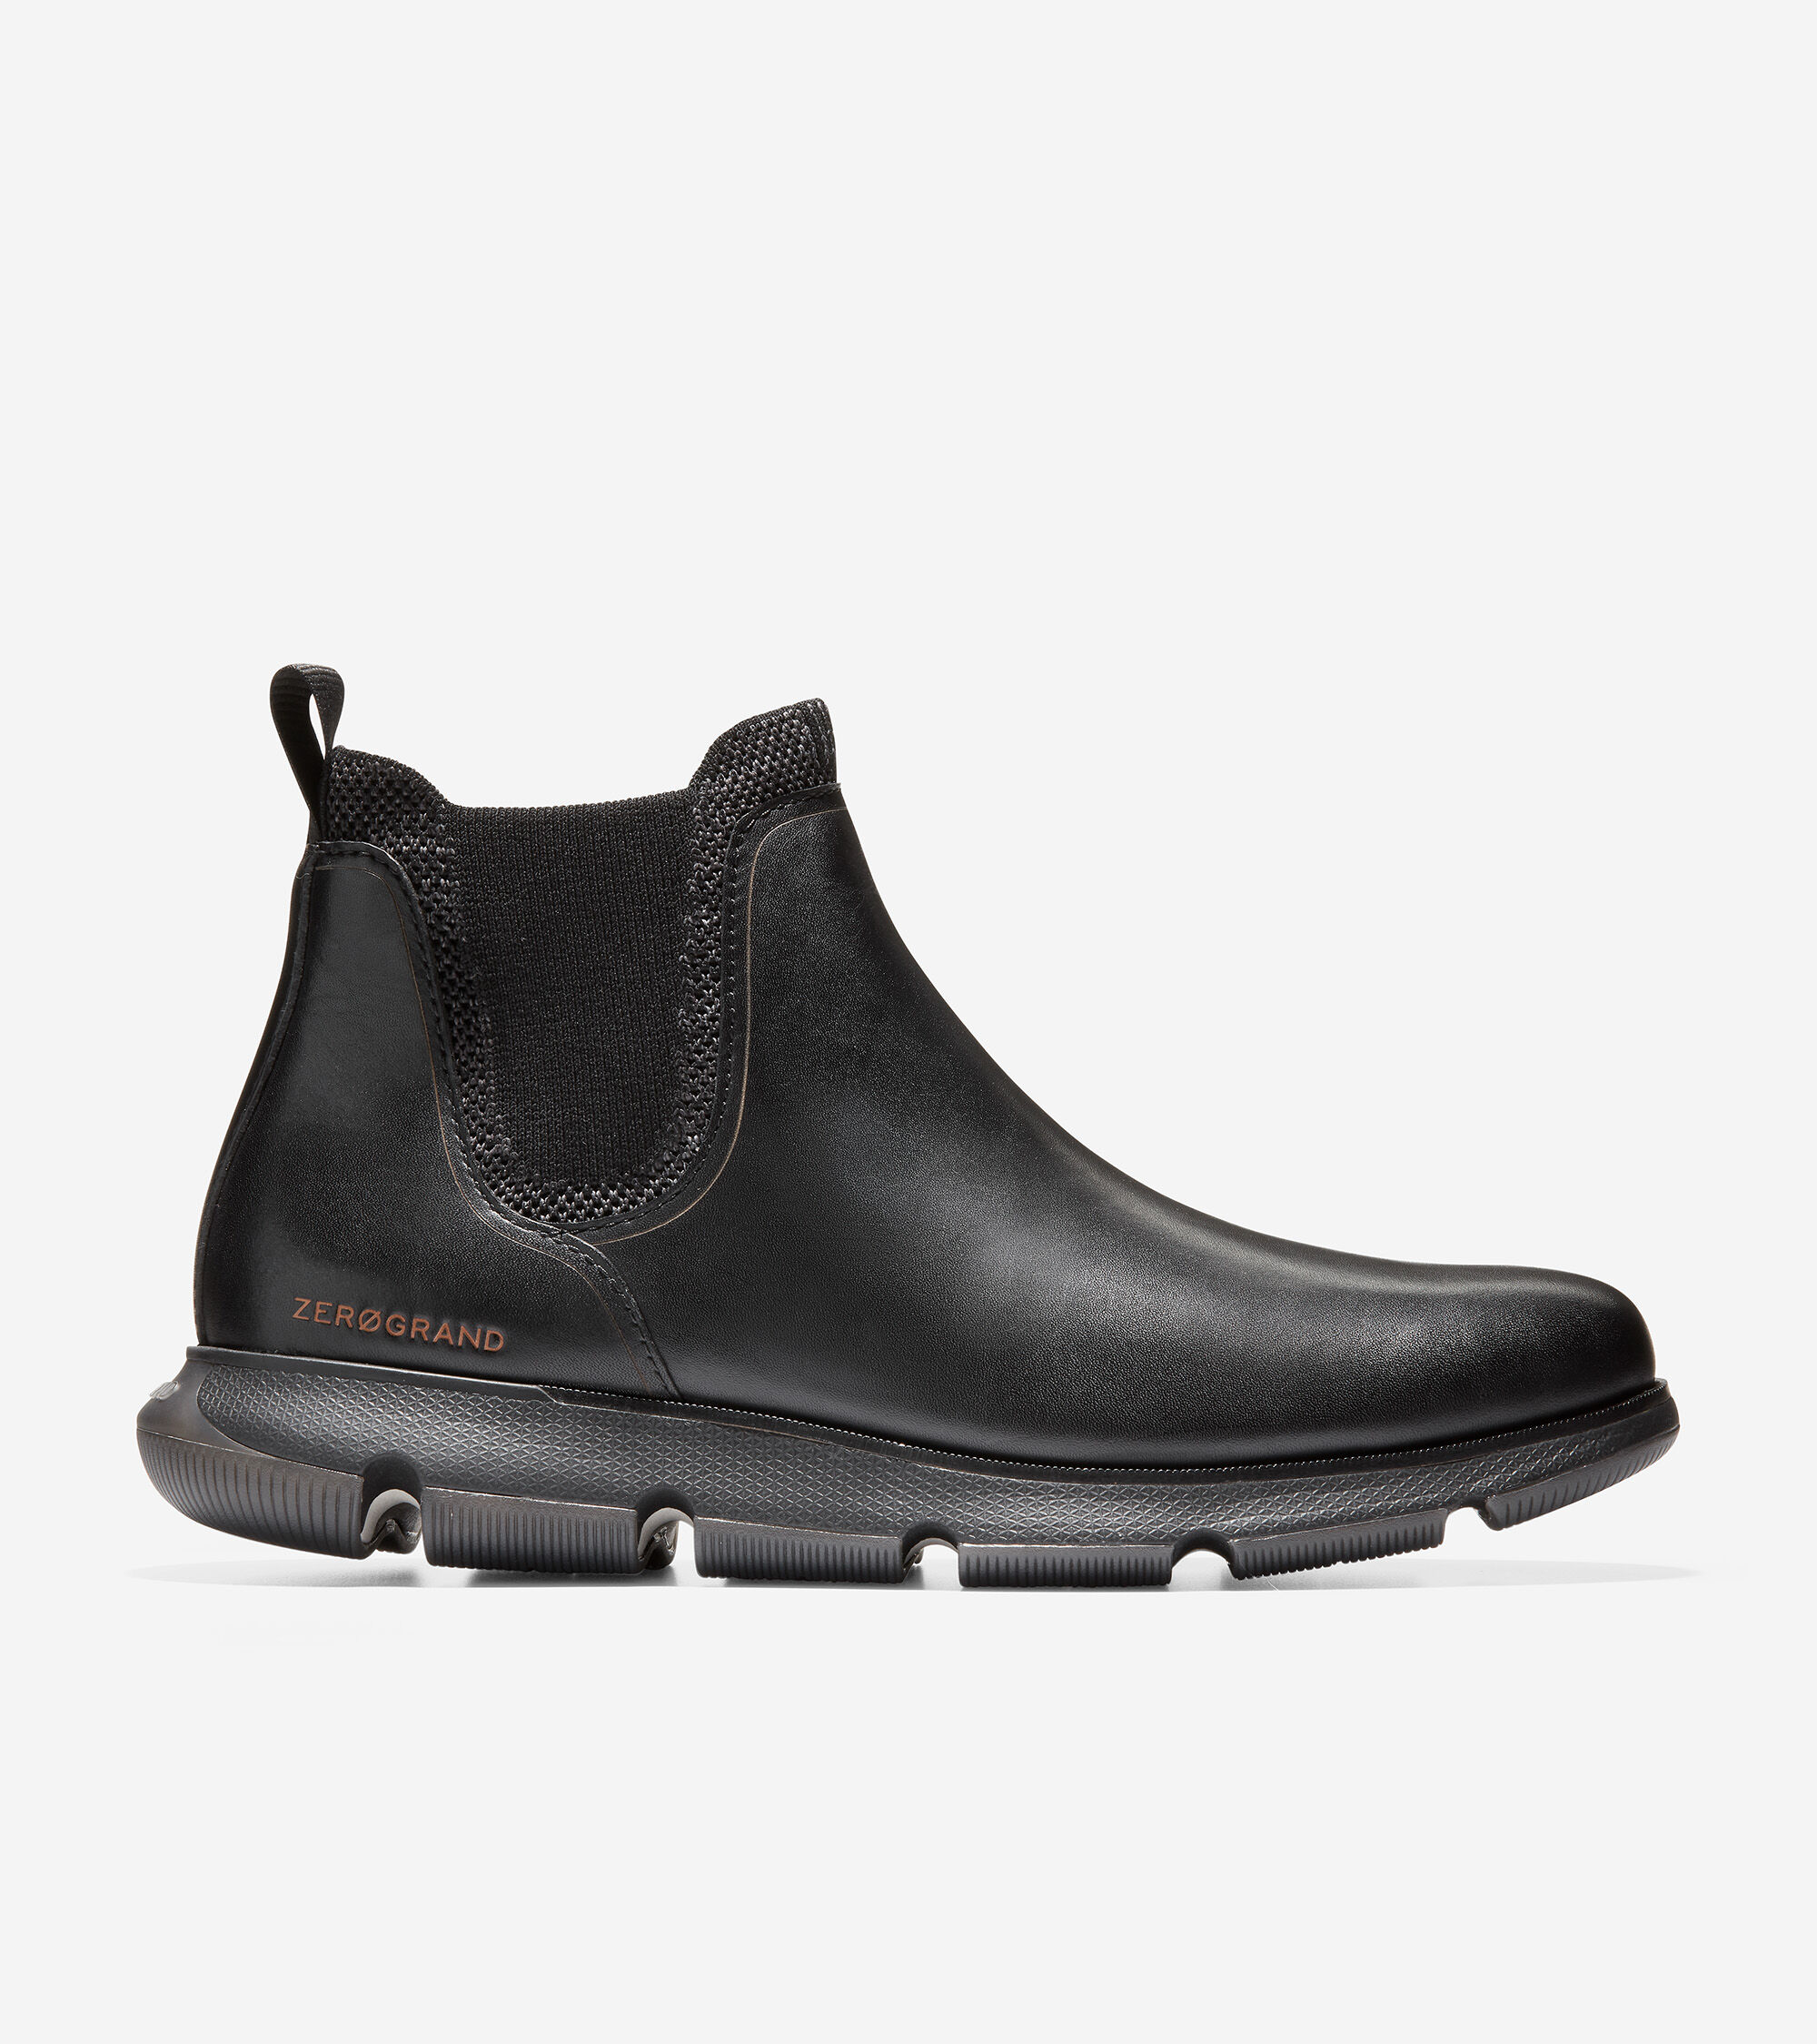 Chukkas \u0026 Ankle Boots   Cole Haan